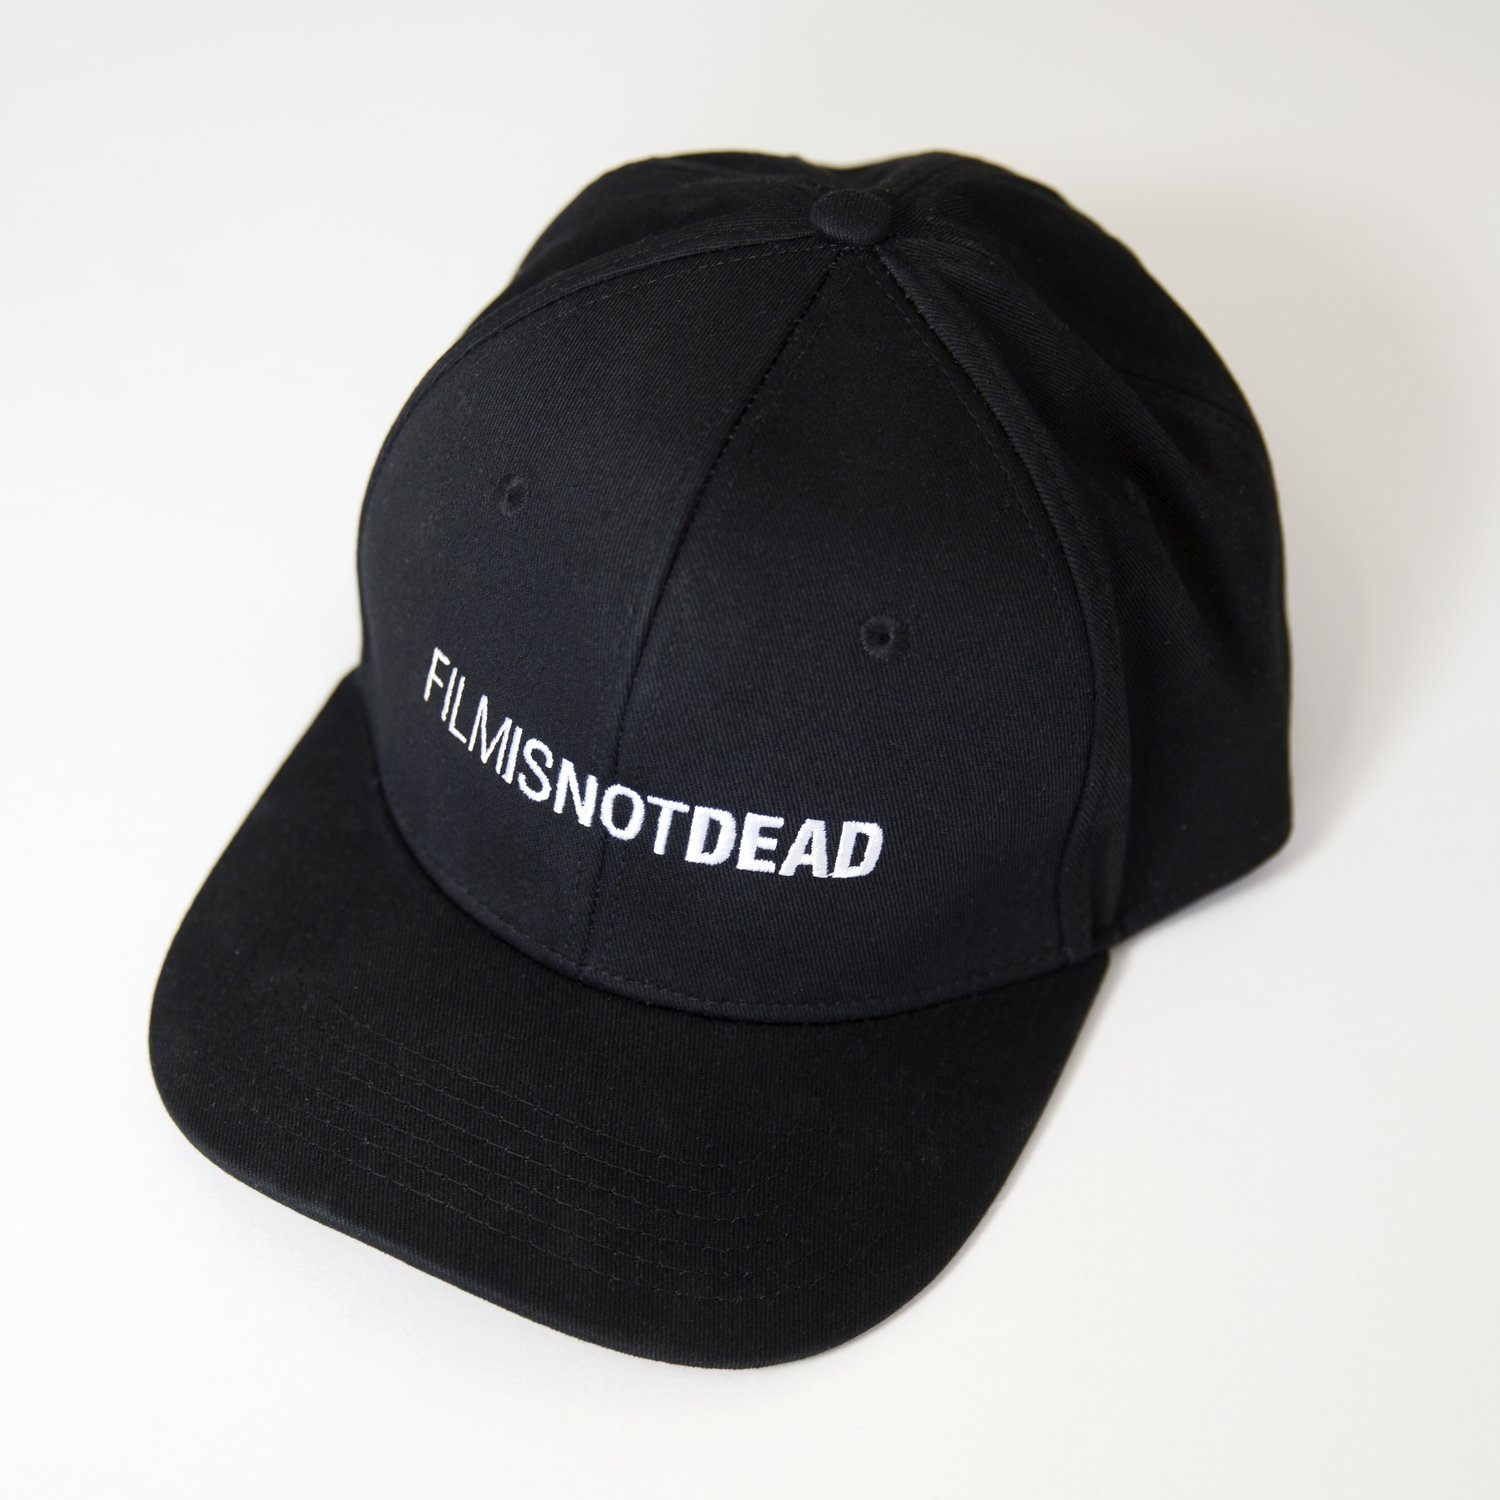 FILM IS NOT DEAD Ballcap